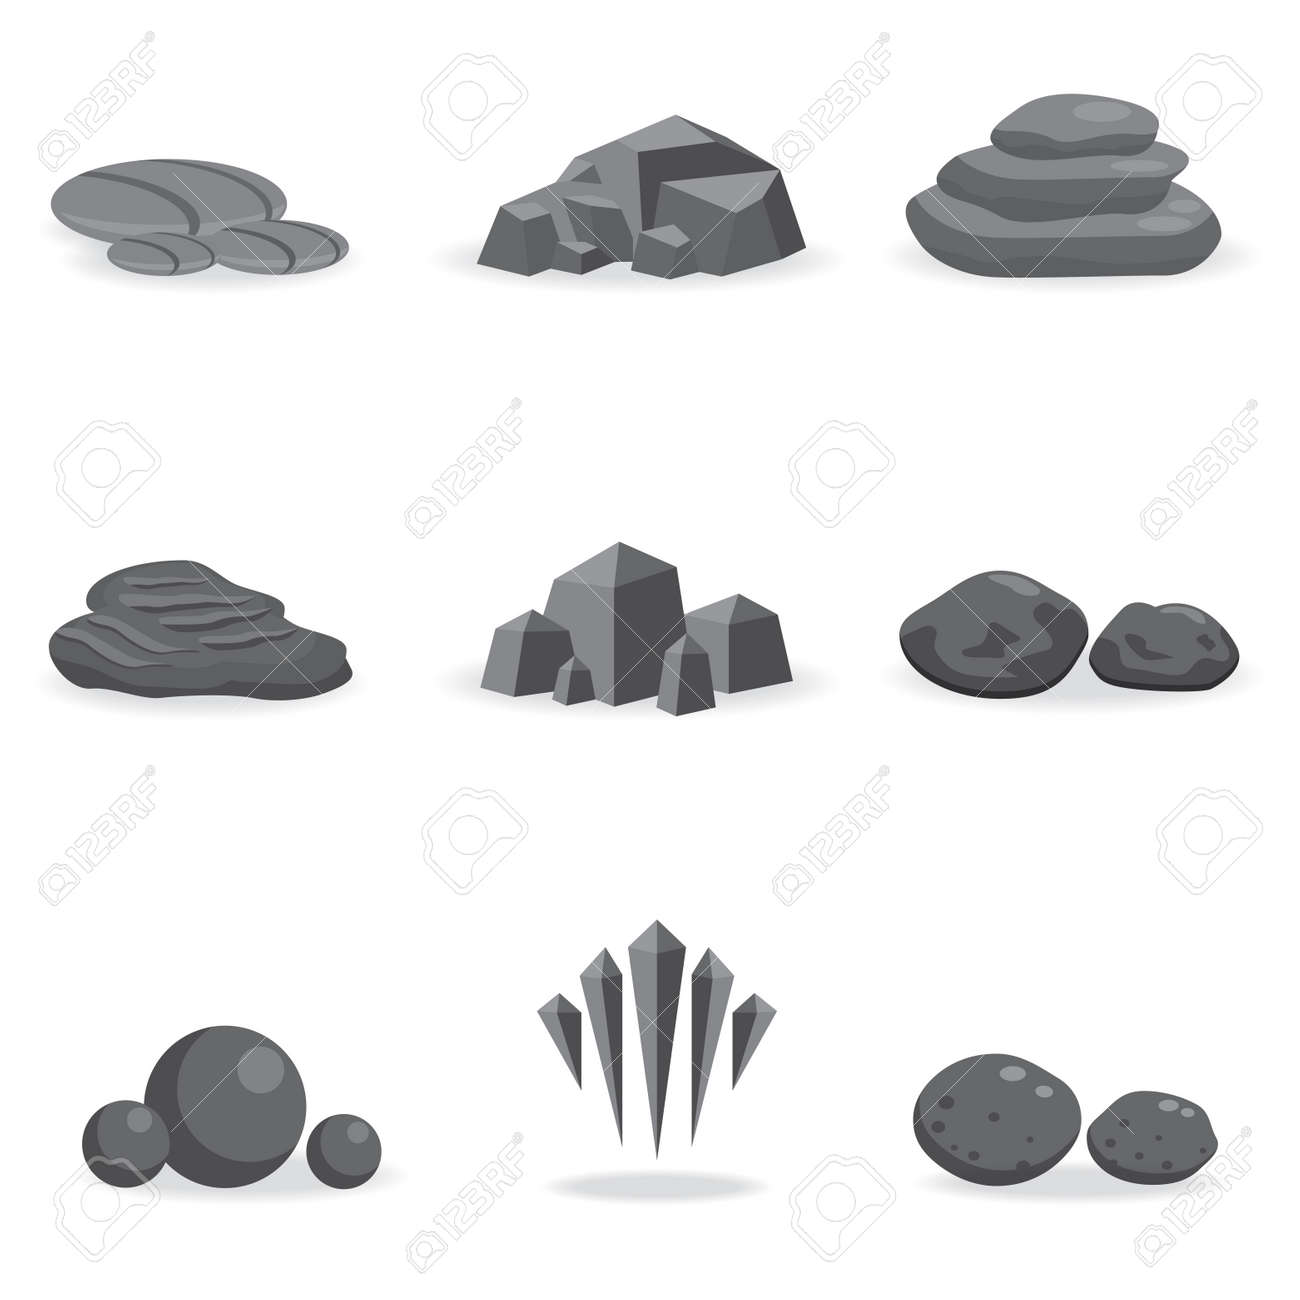 set stone, rock and pebble element decor isolated for game art architecture design - 52329259